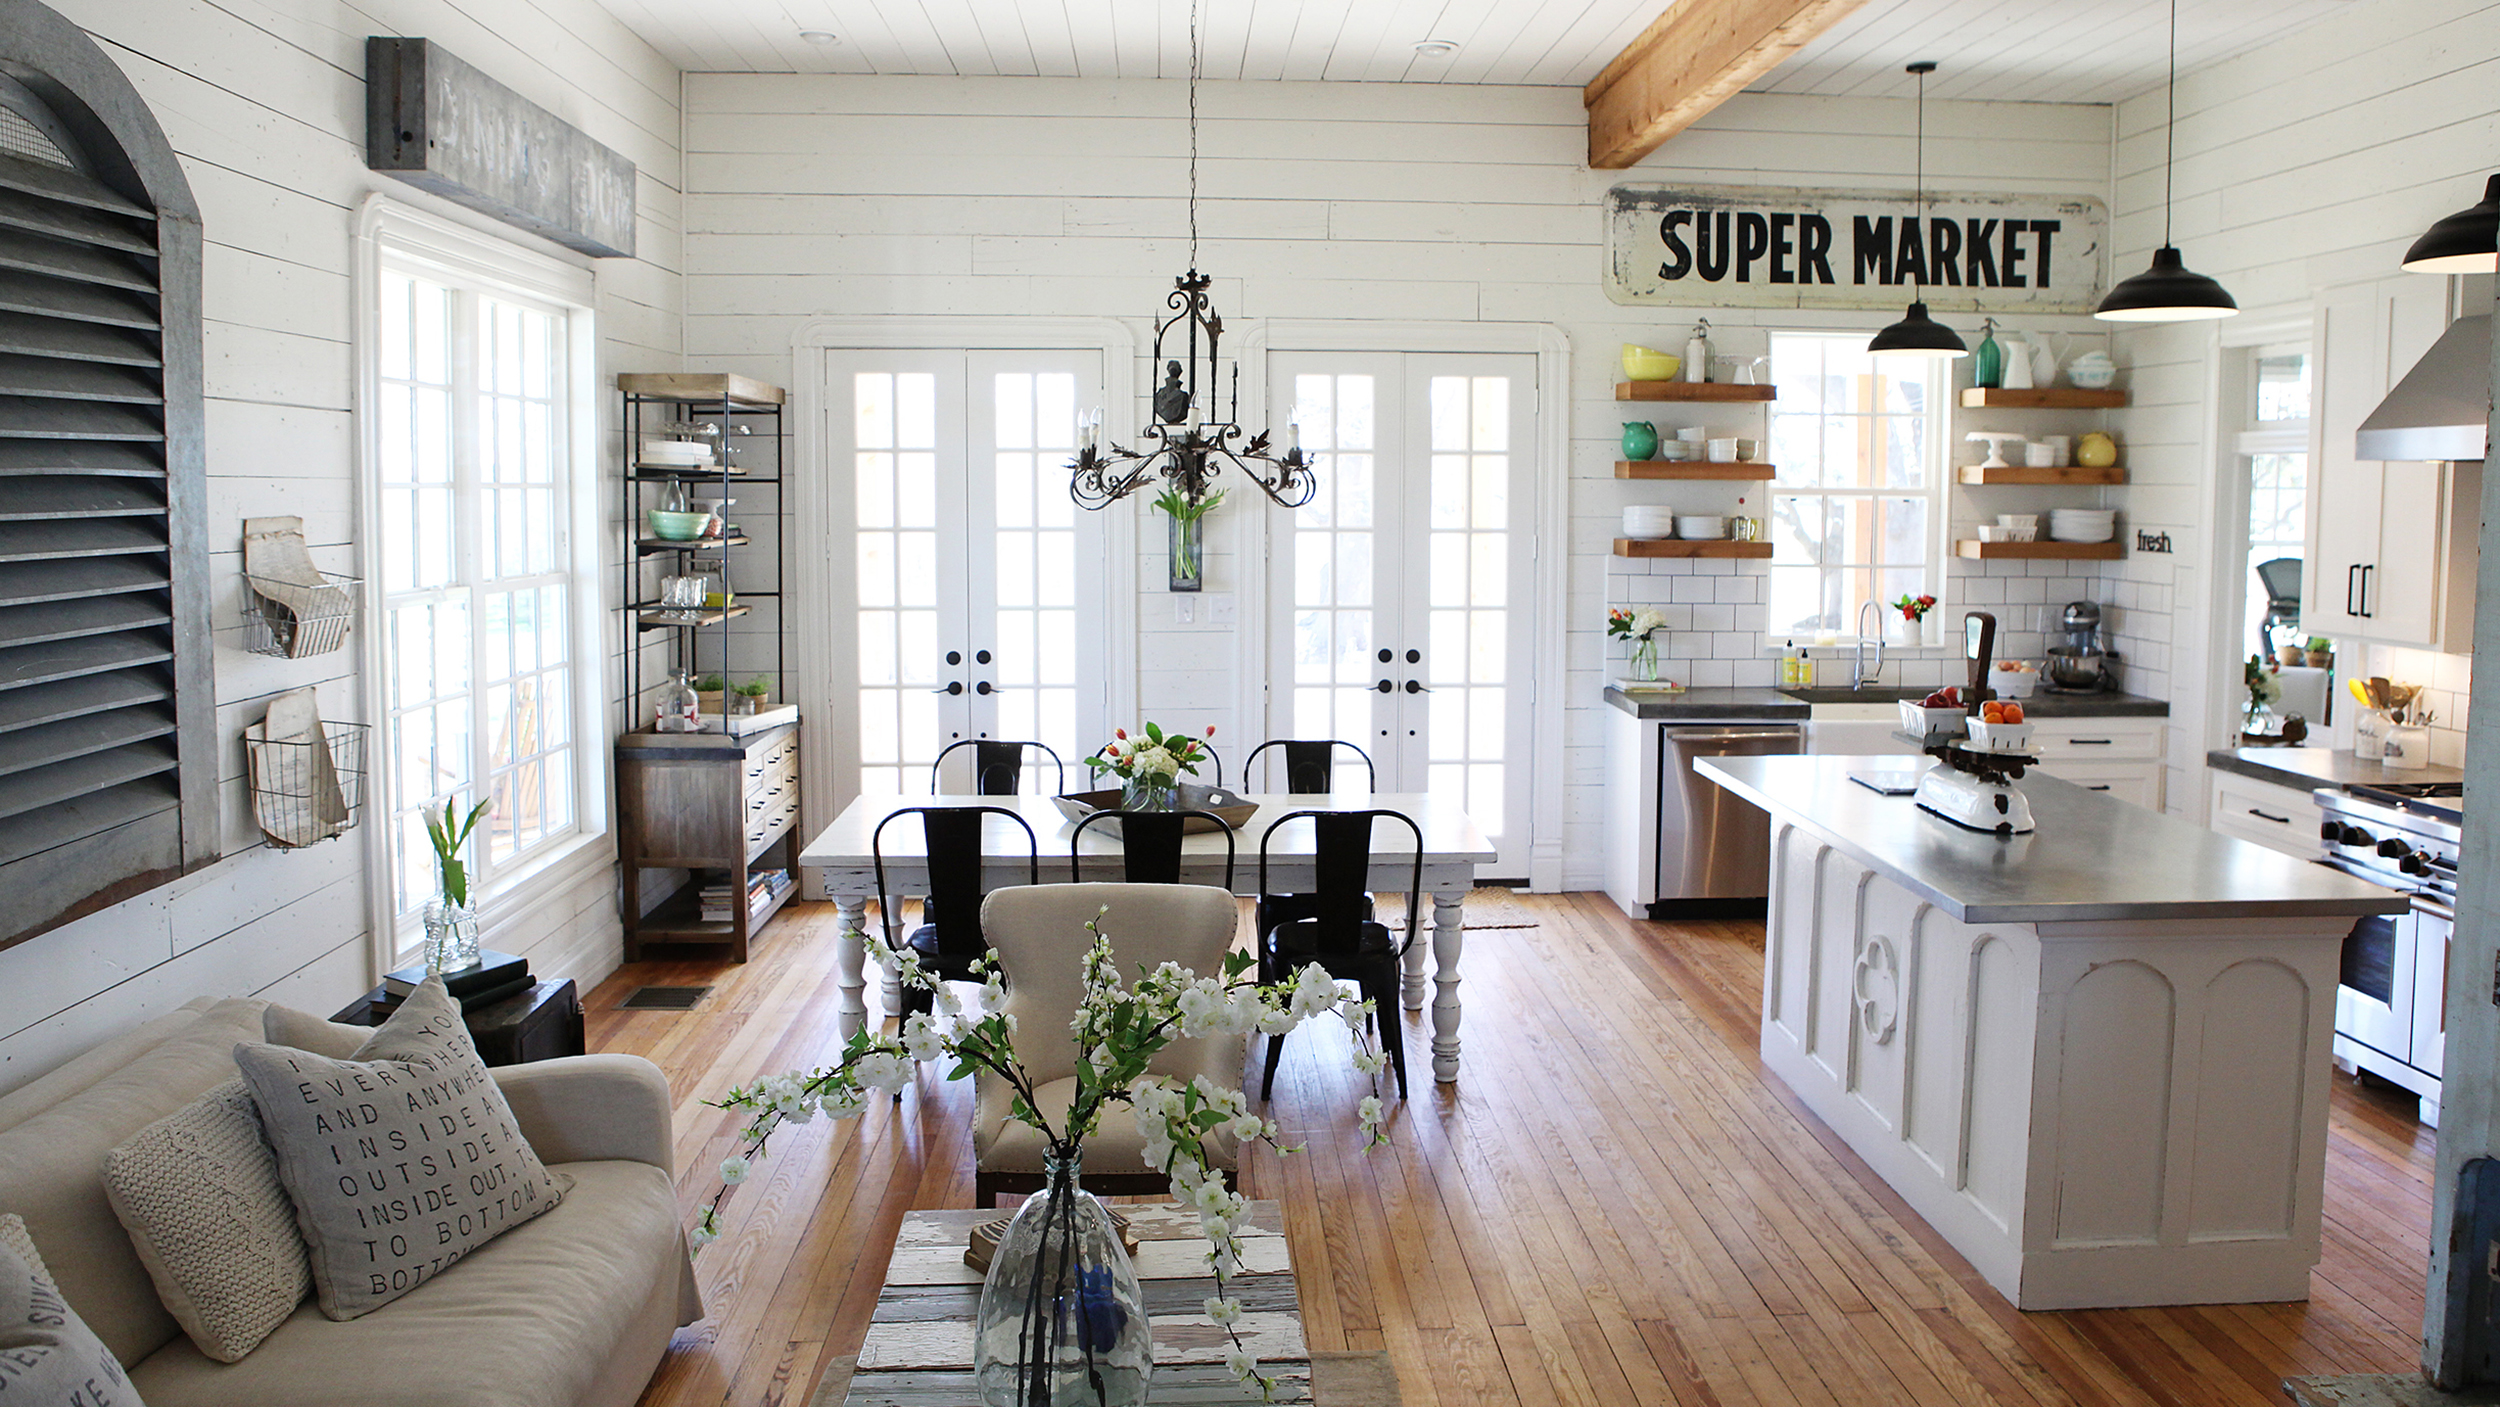 Chip and joanna gaines 39 fixer upper 39 home tour in waco for Joanna gaines home designs